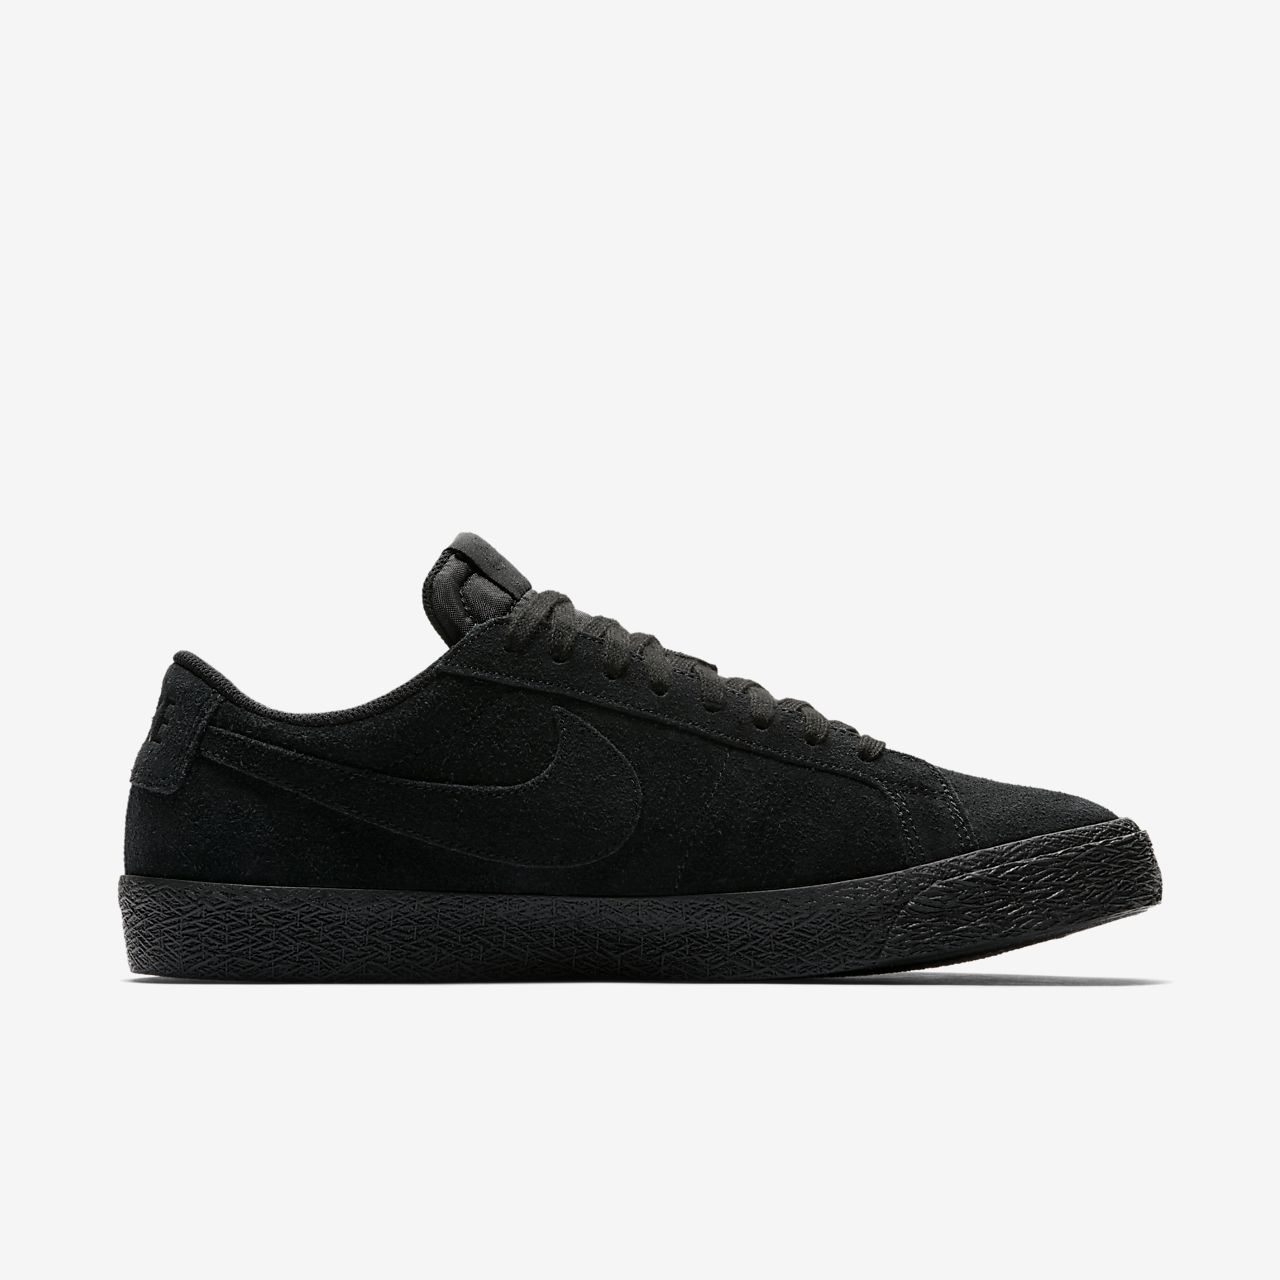 cff0a47adc1 Nike SB Blazer Zoom Low Men's Skateboarding Shoe. Nike.com GB